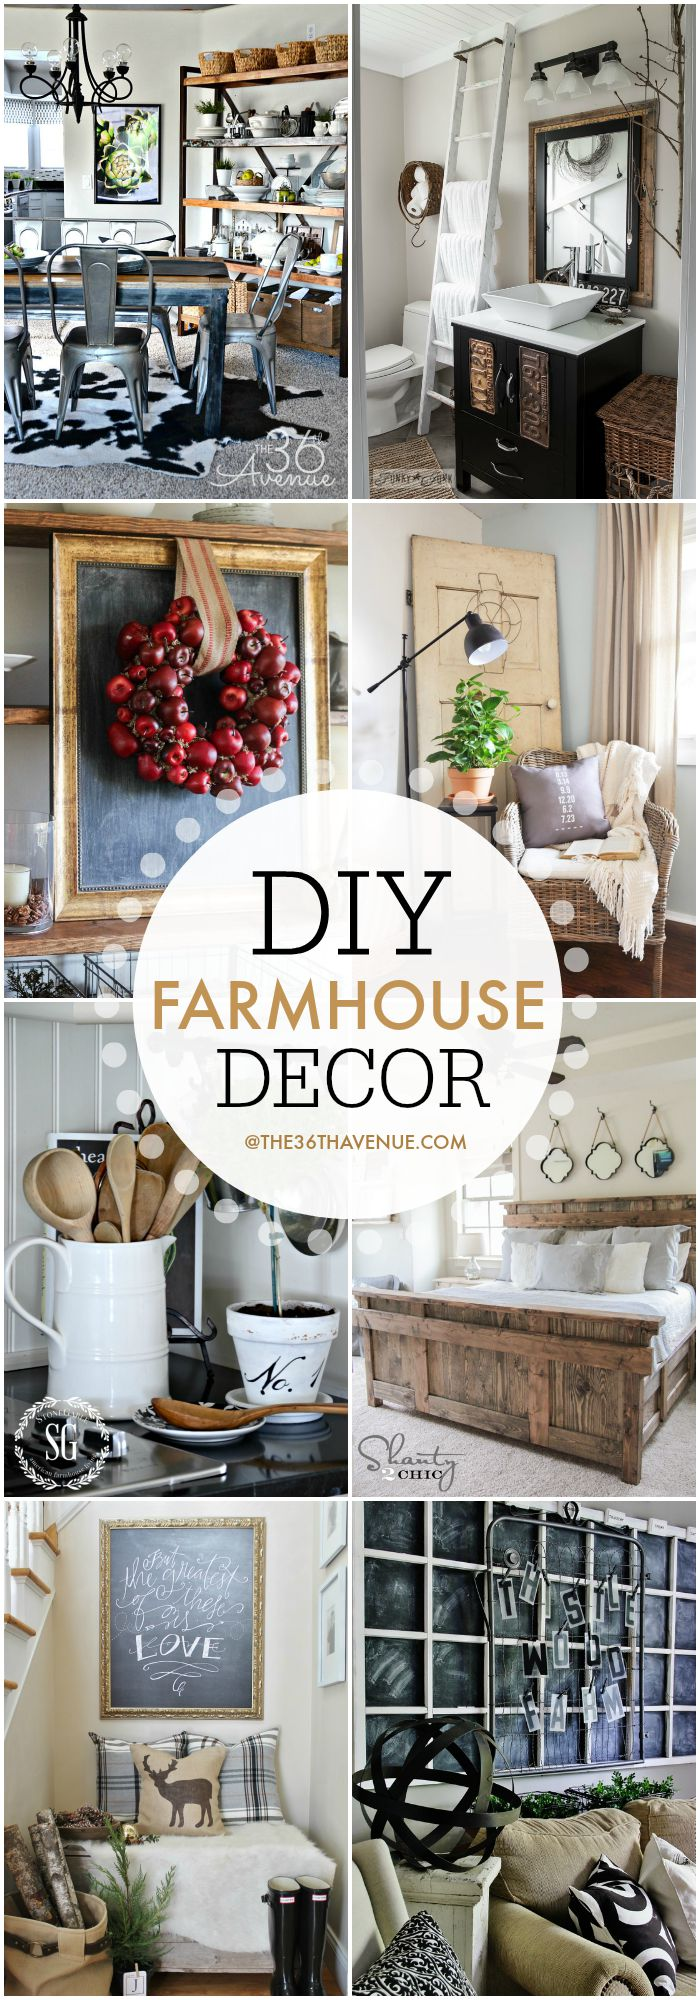 DIY Farmhouse Decor at the36thavenue.com